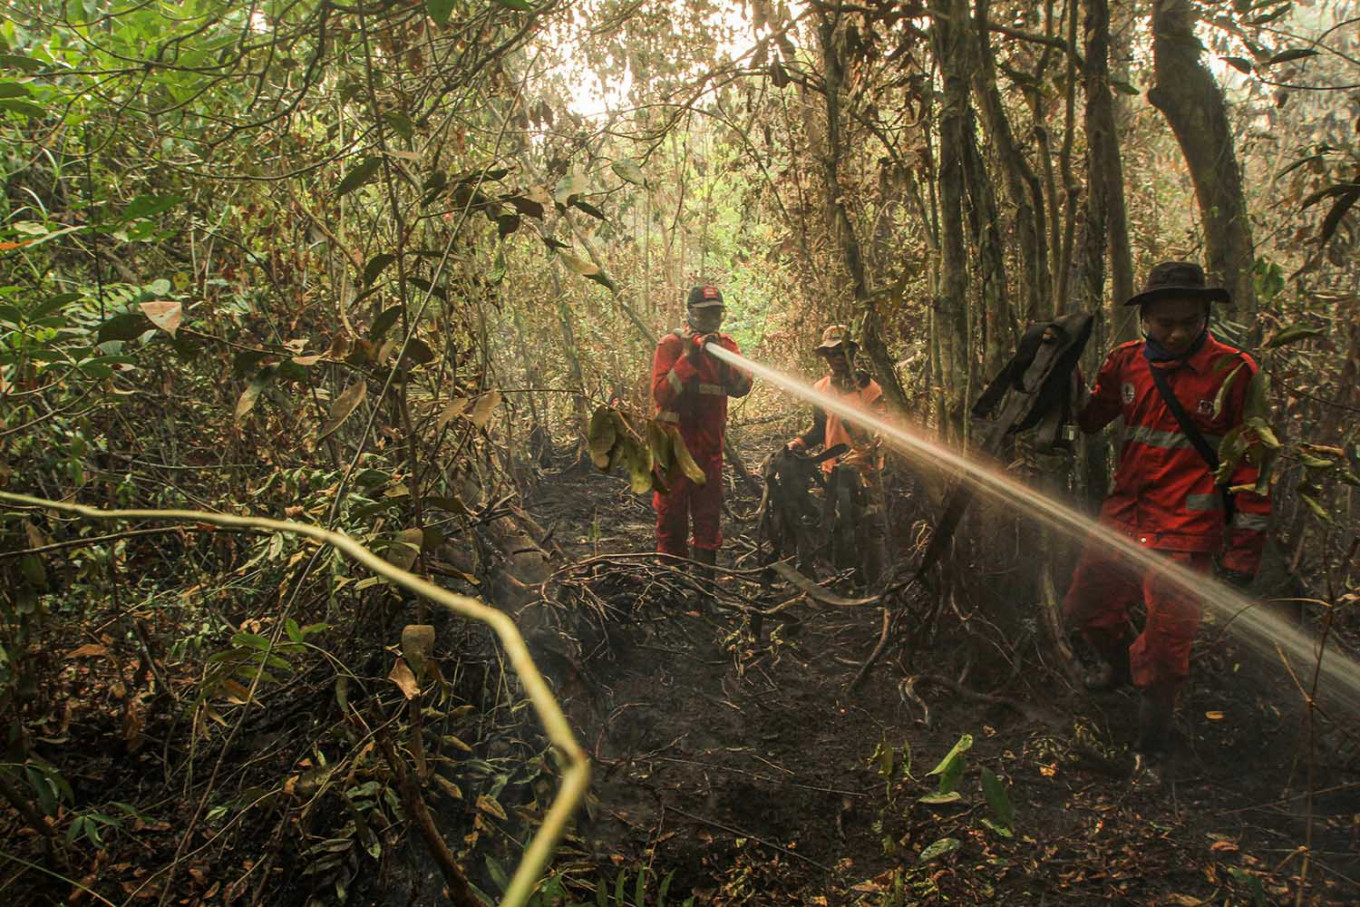 Riau lifts emergency status for haze as hot spots extinguished